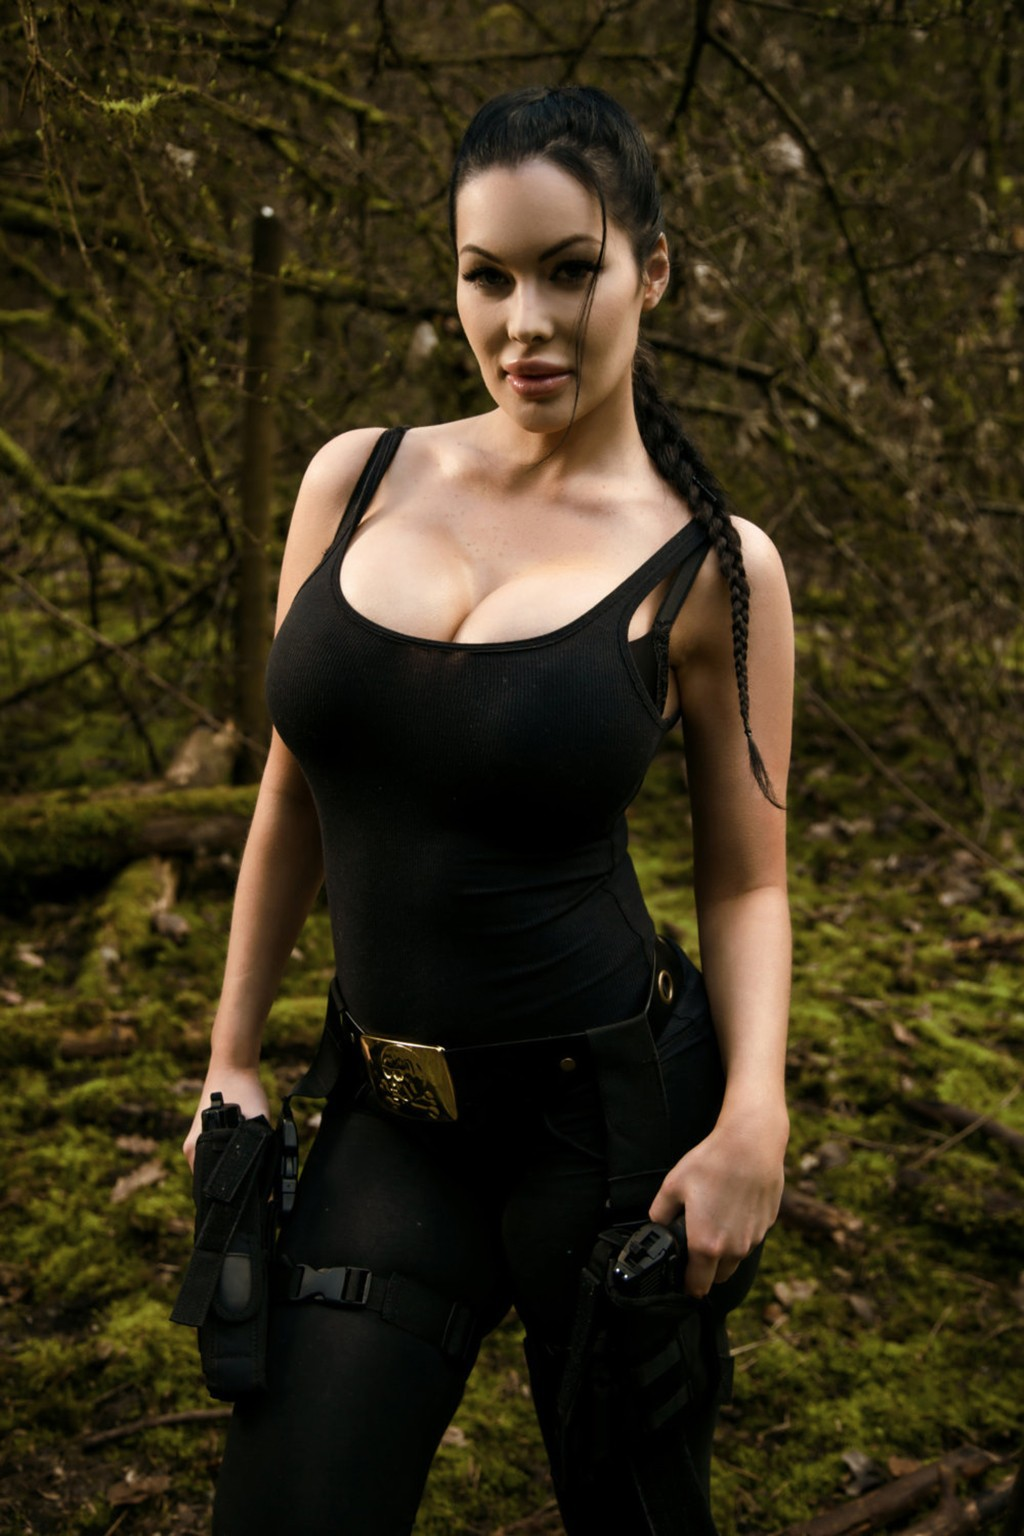 Destiny dixon tomb raider